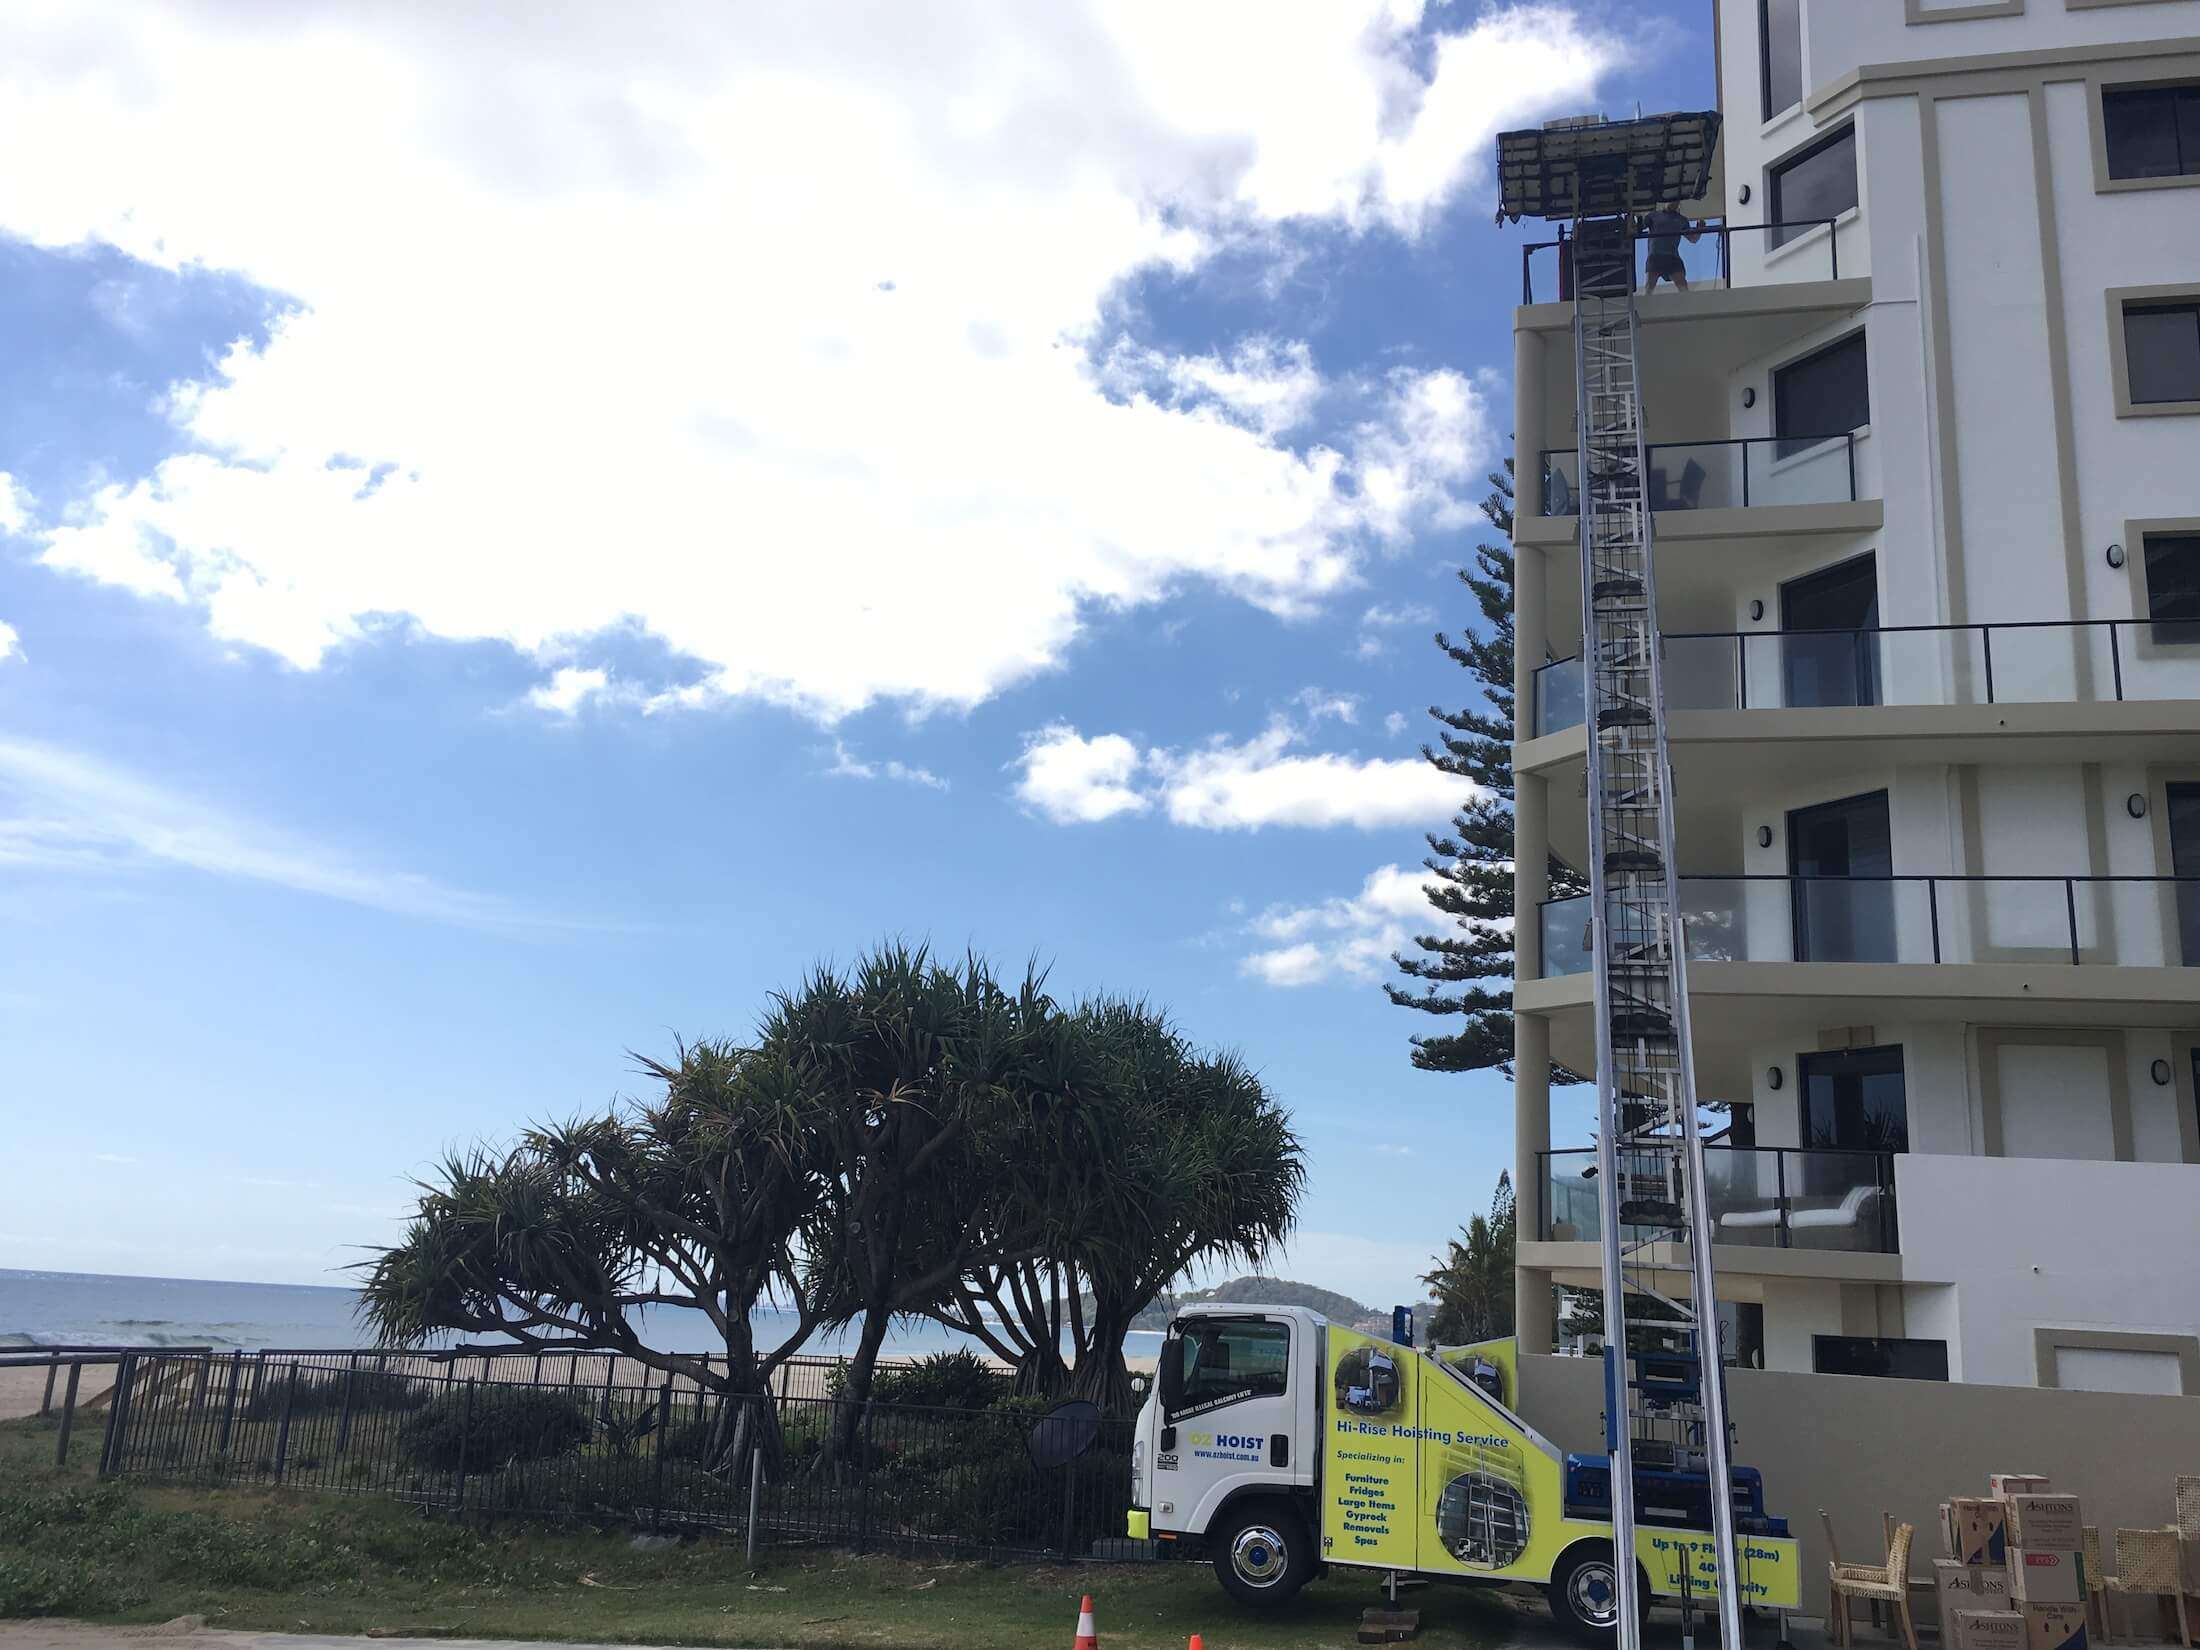 gold_coast_high_rise_apartment_lift_furniture_from_balcony_crane_hoist_lifting_up_to_9_storeys_for_units_house_townhouse